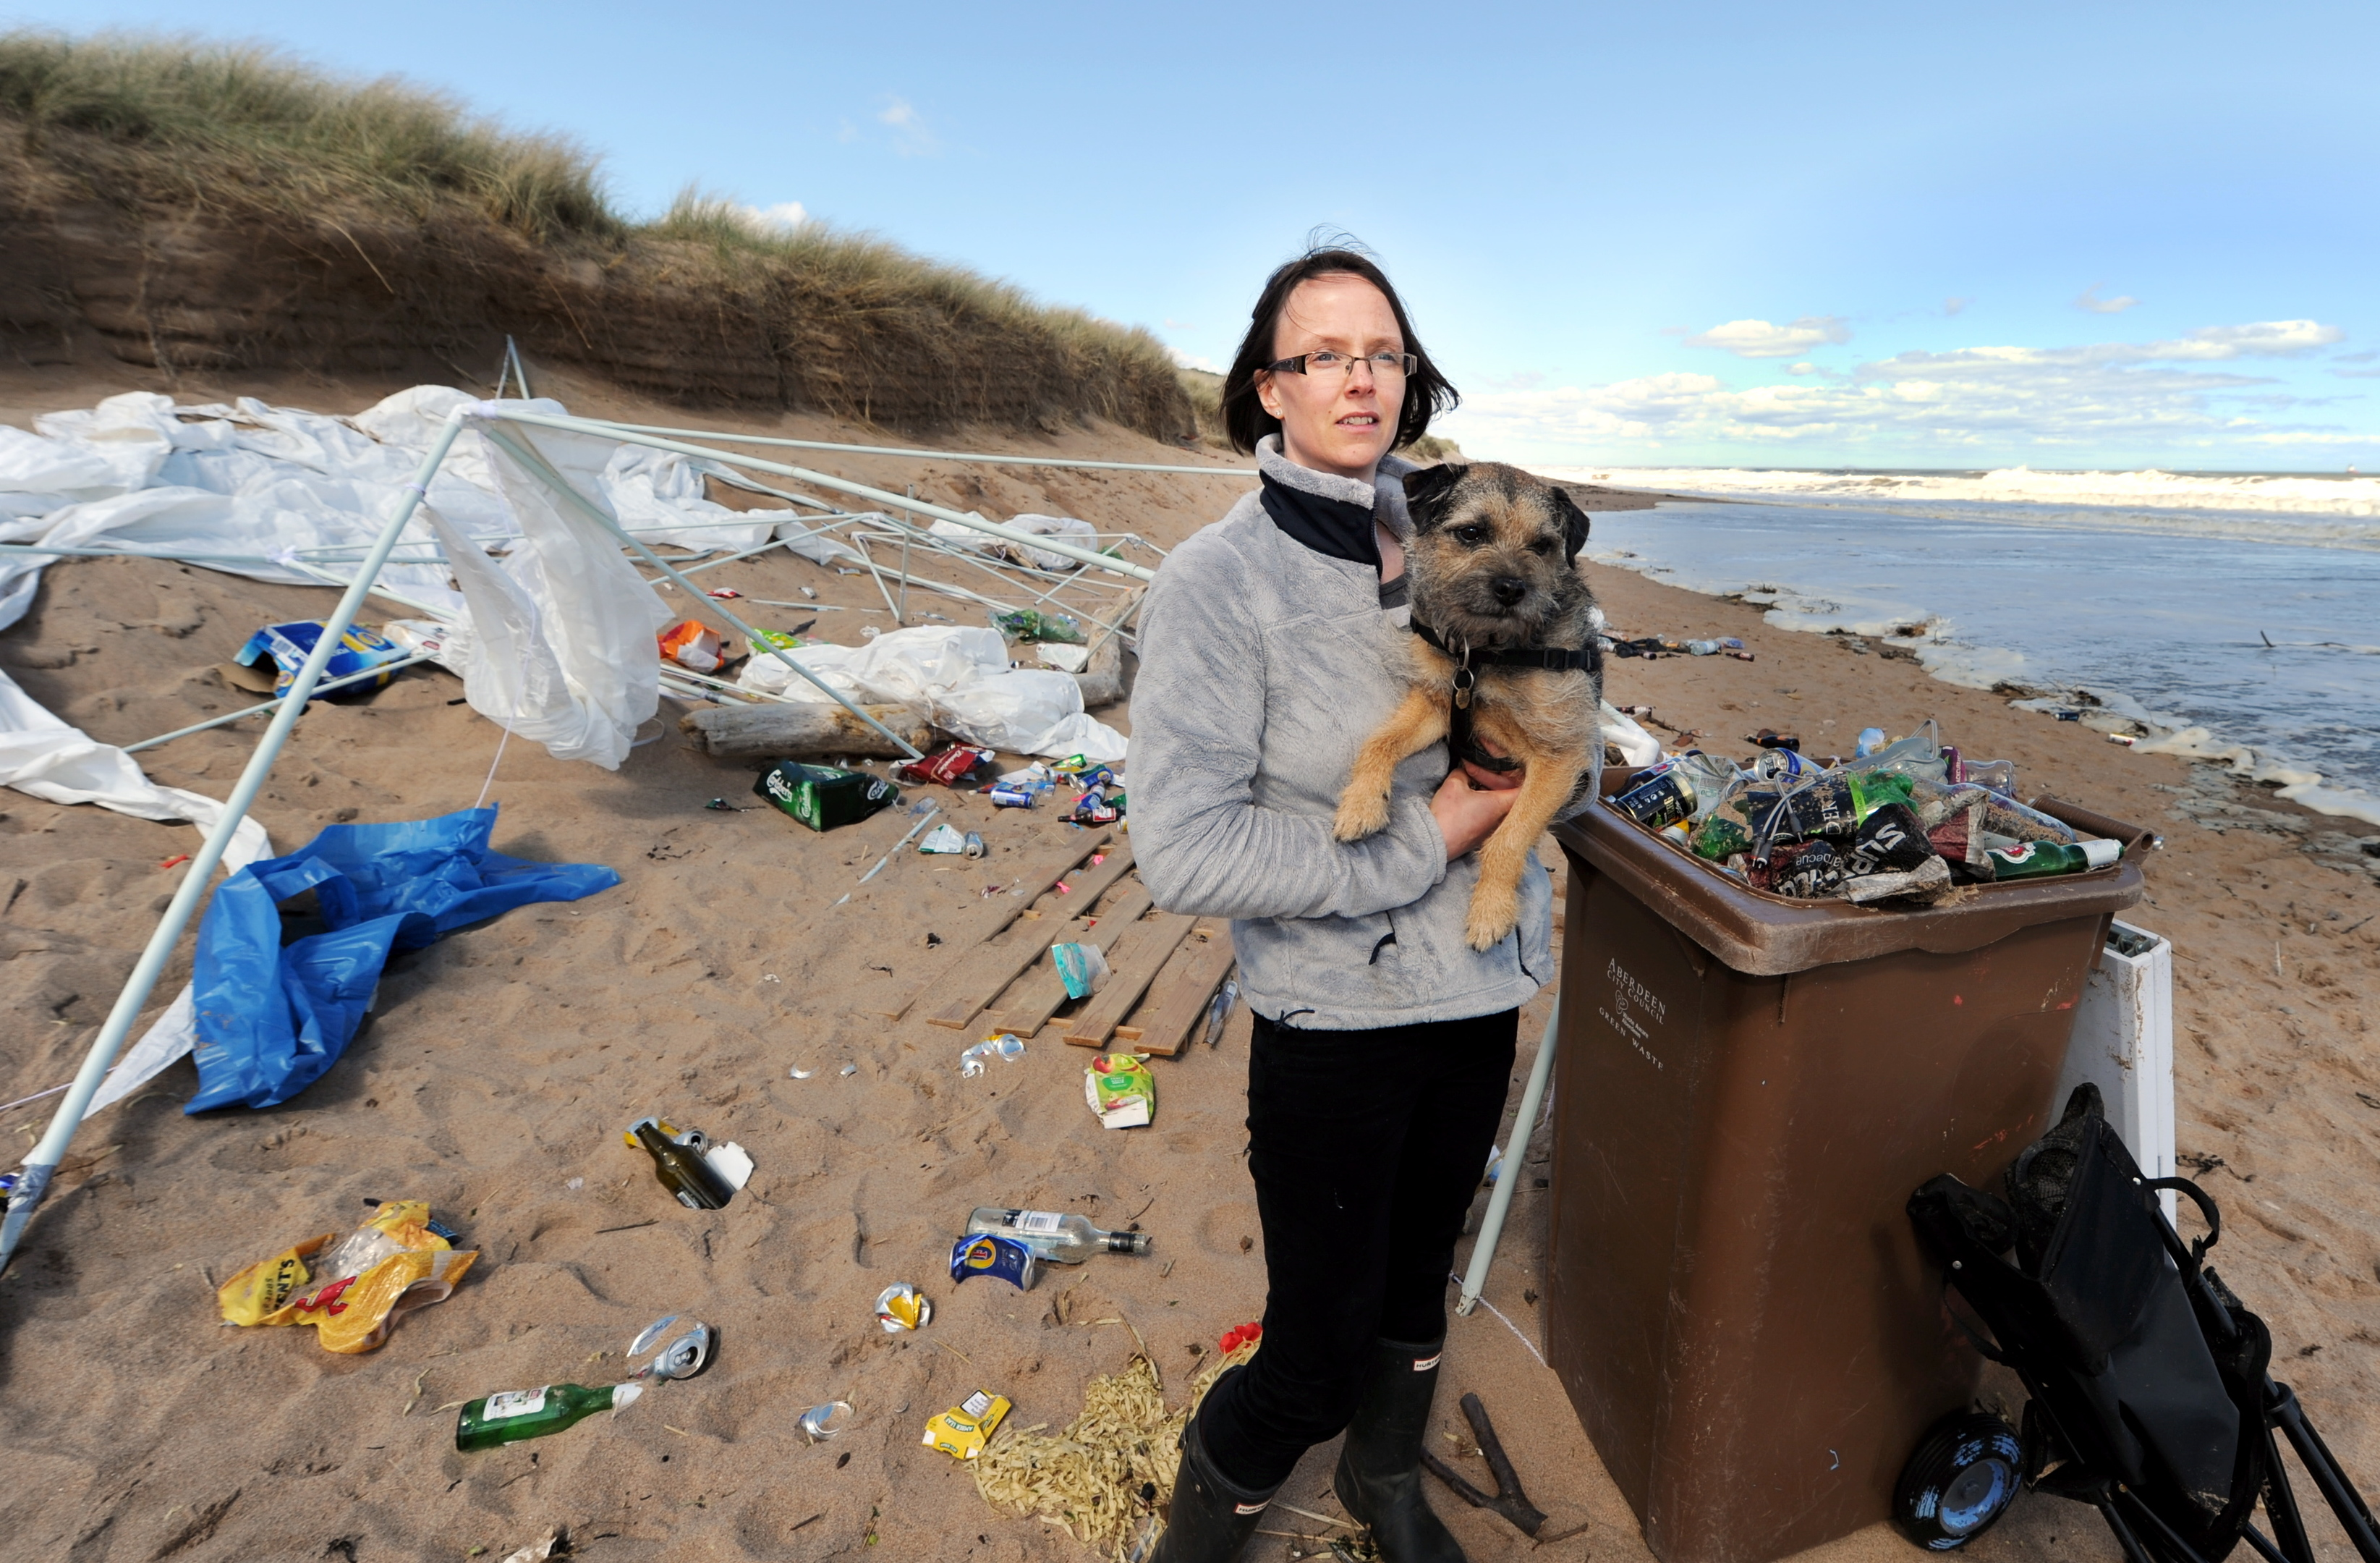 Angela Slater discovered the mess on the beach north of the River Don.